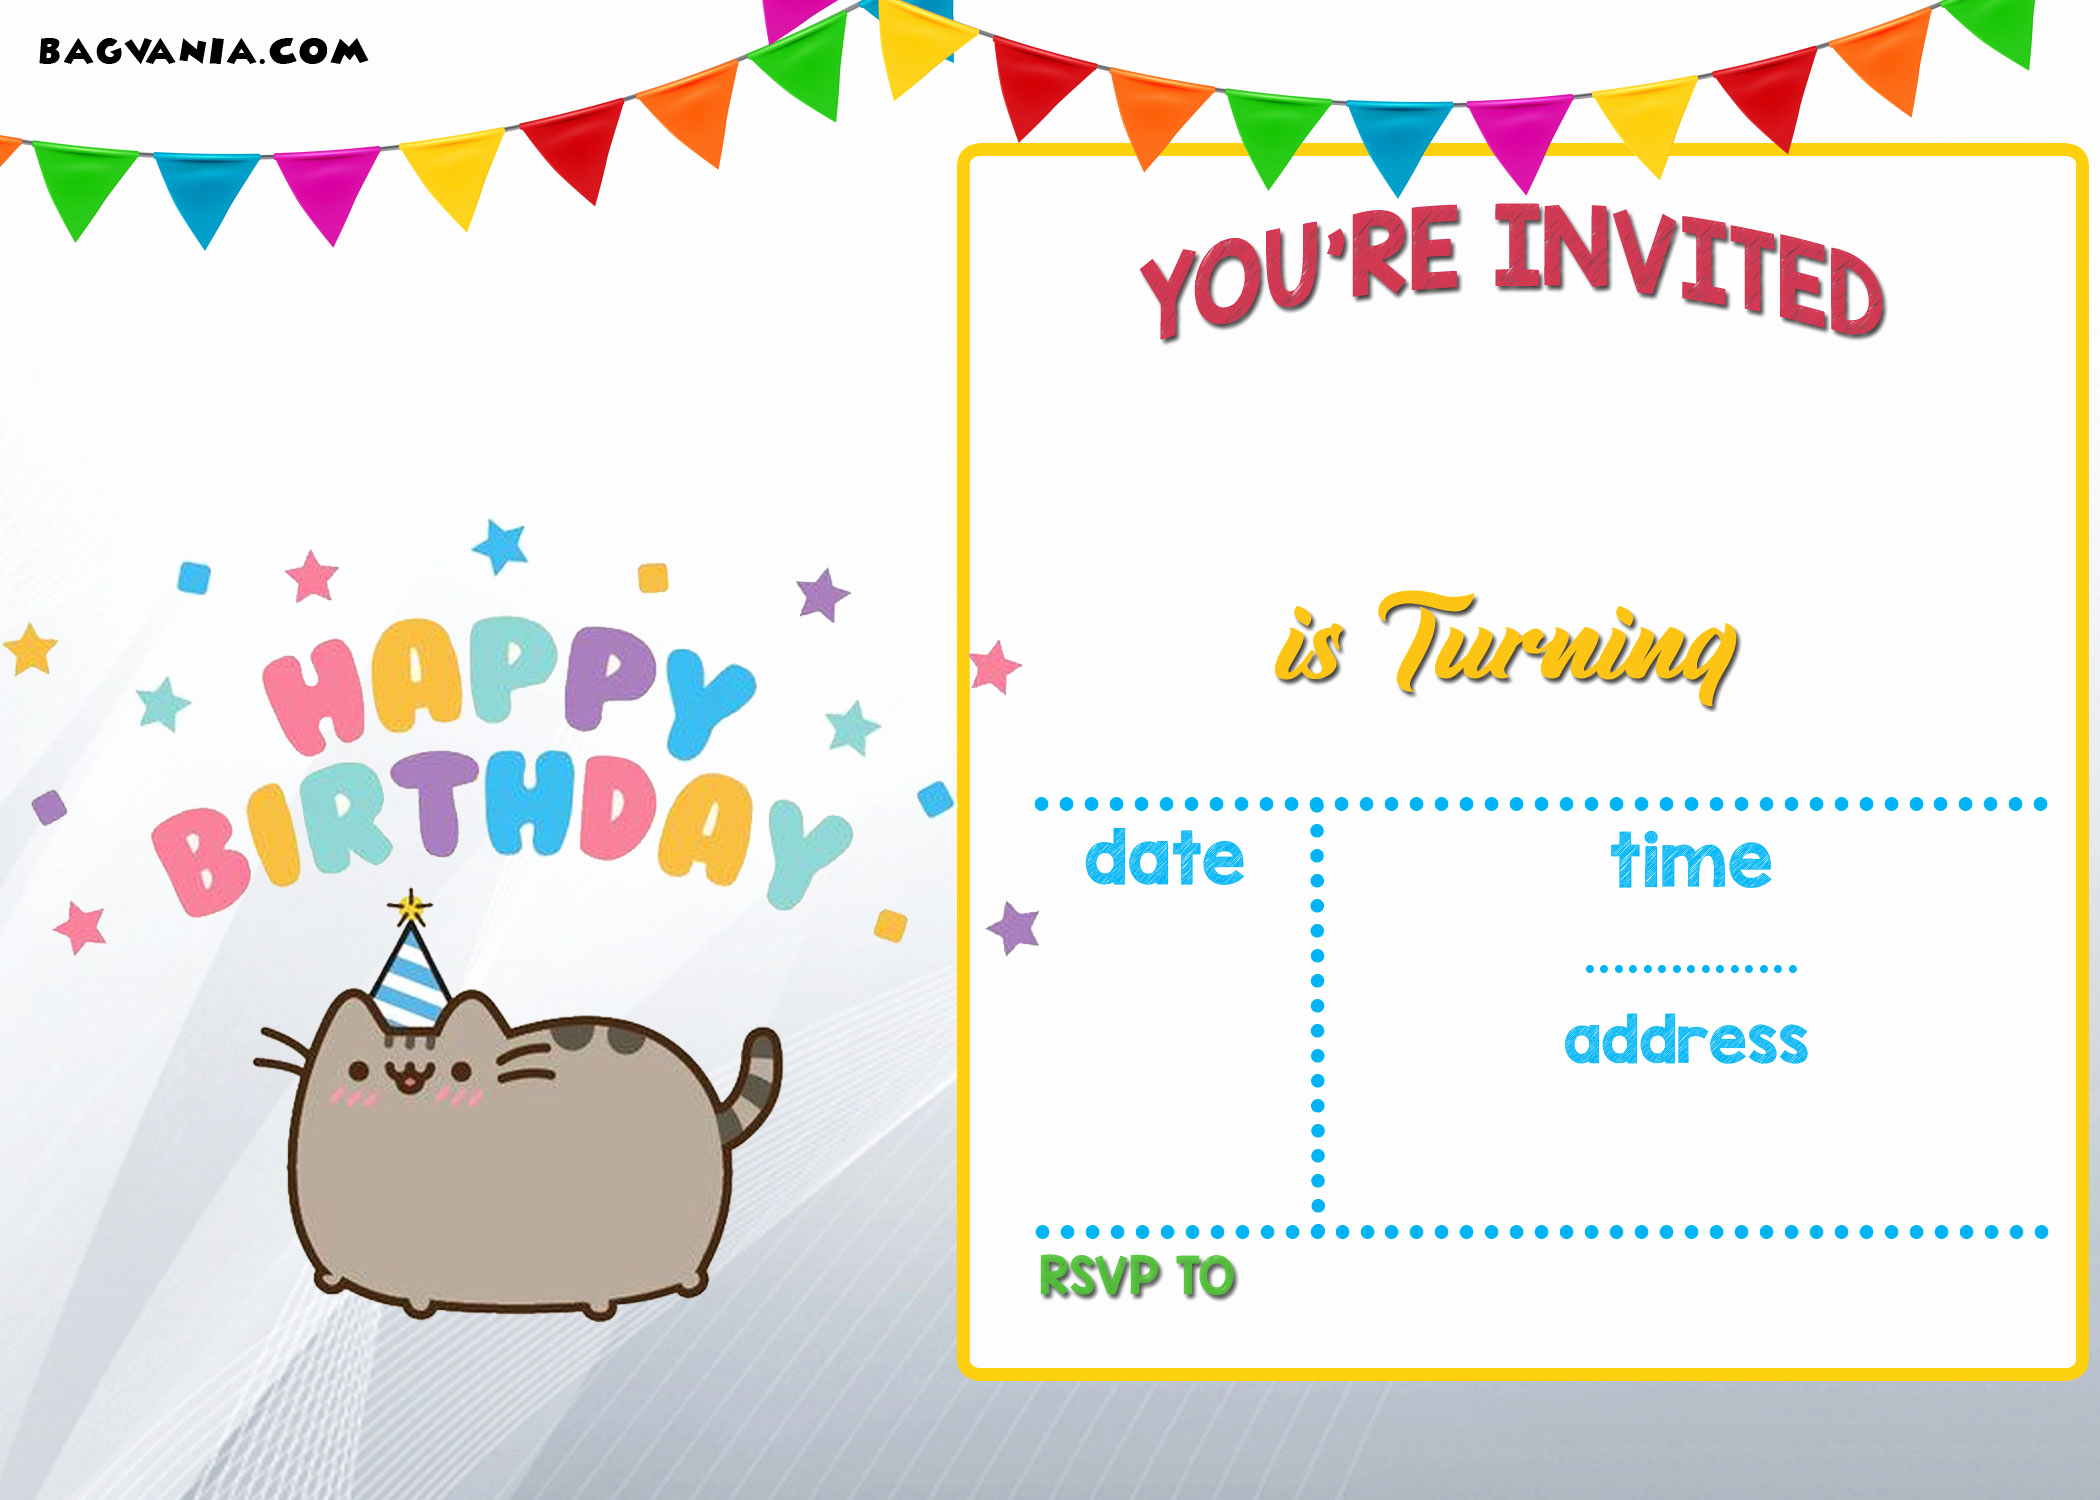 Free Invitation Template Printable Elegant Free Printable Pusheen Birthday Invitation Template